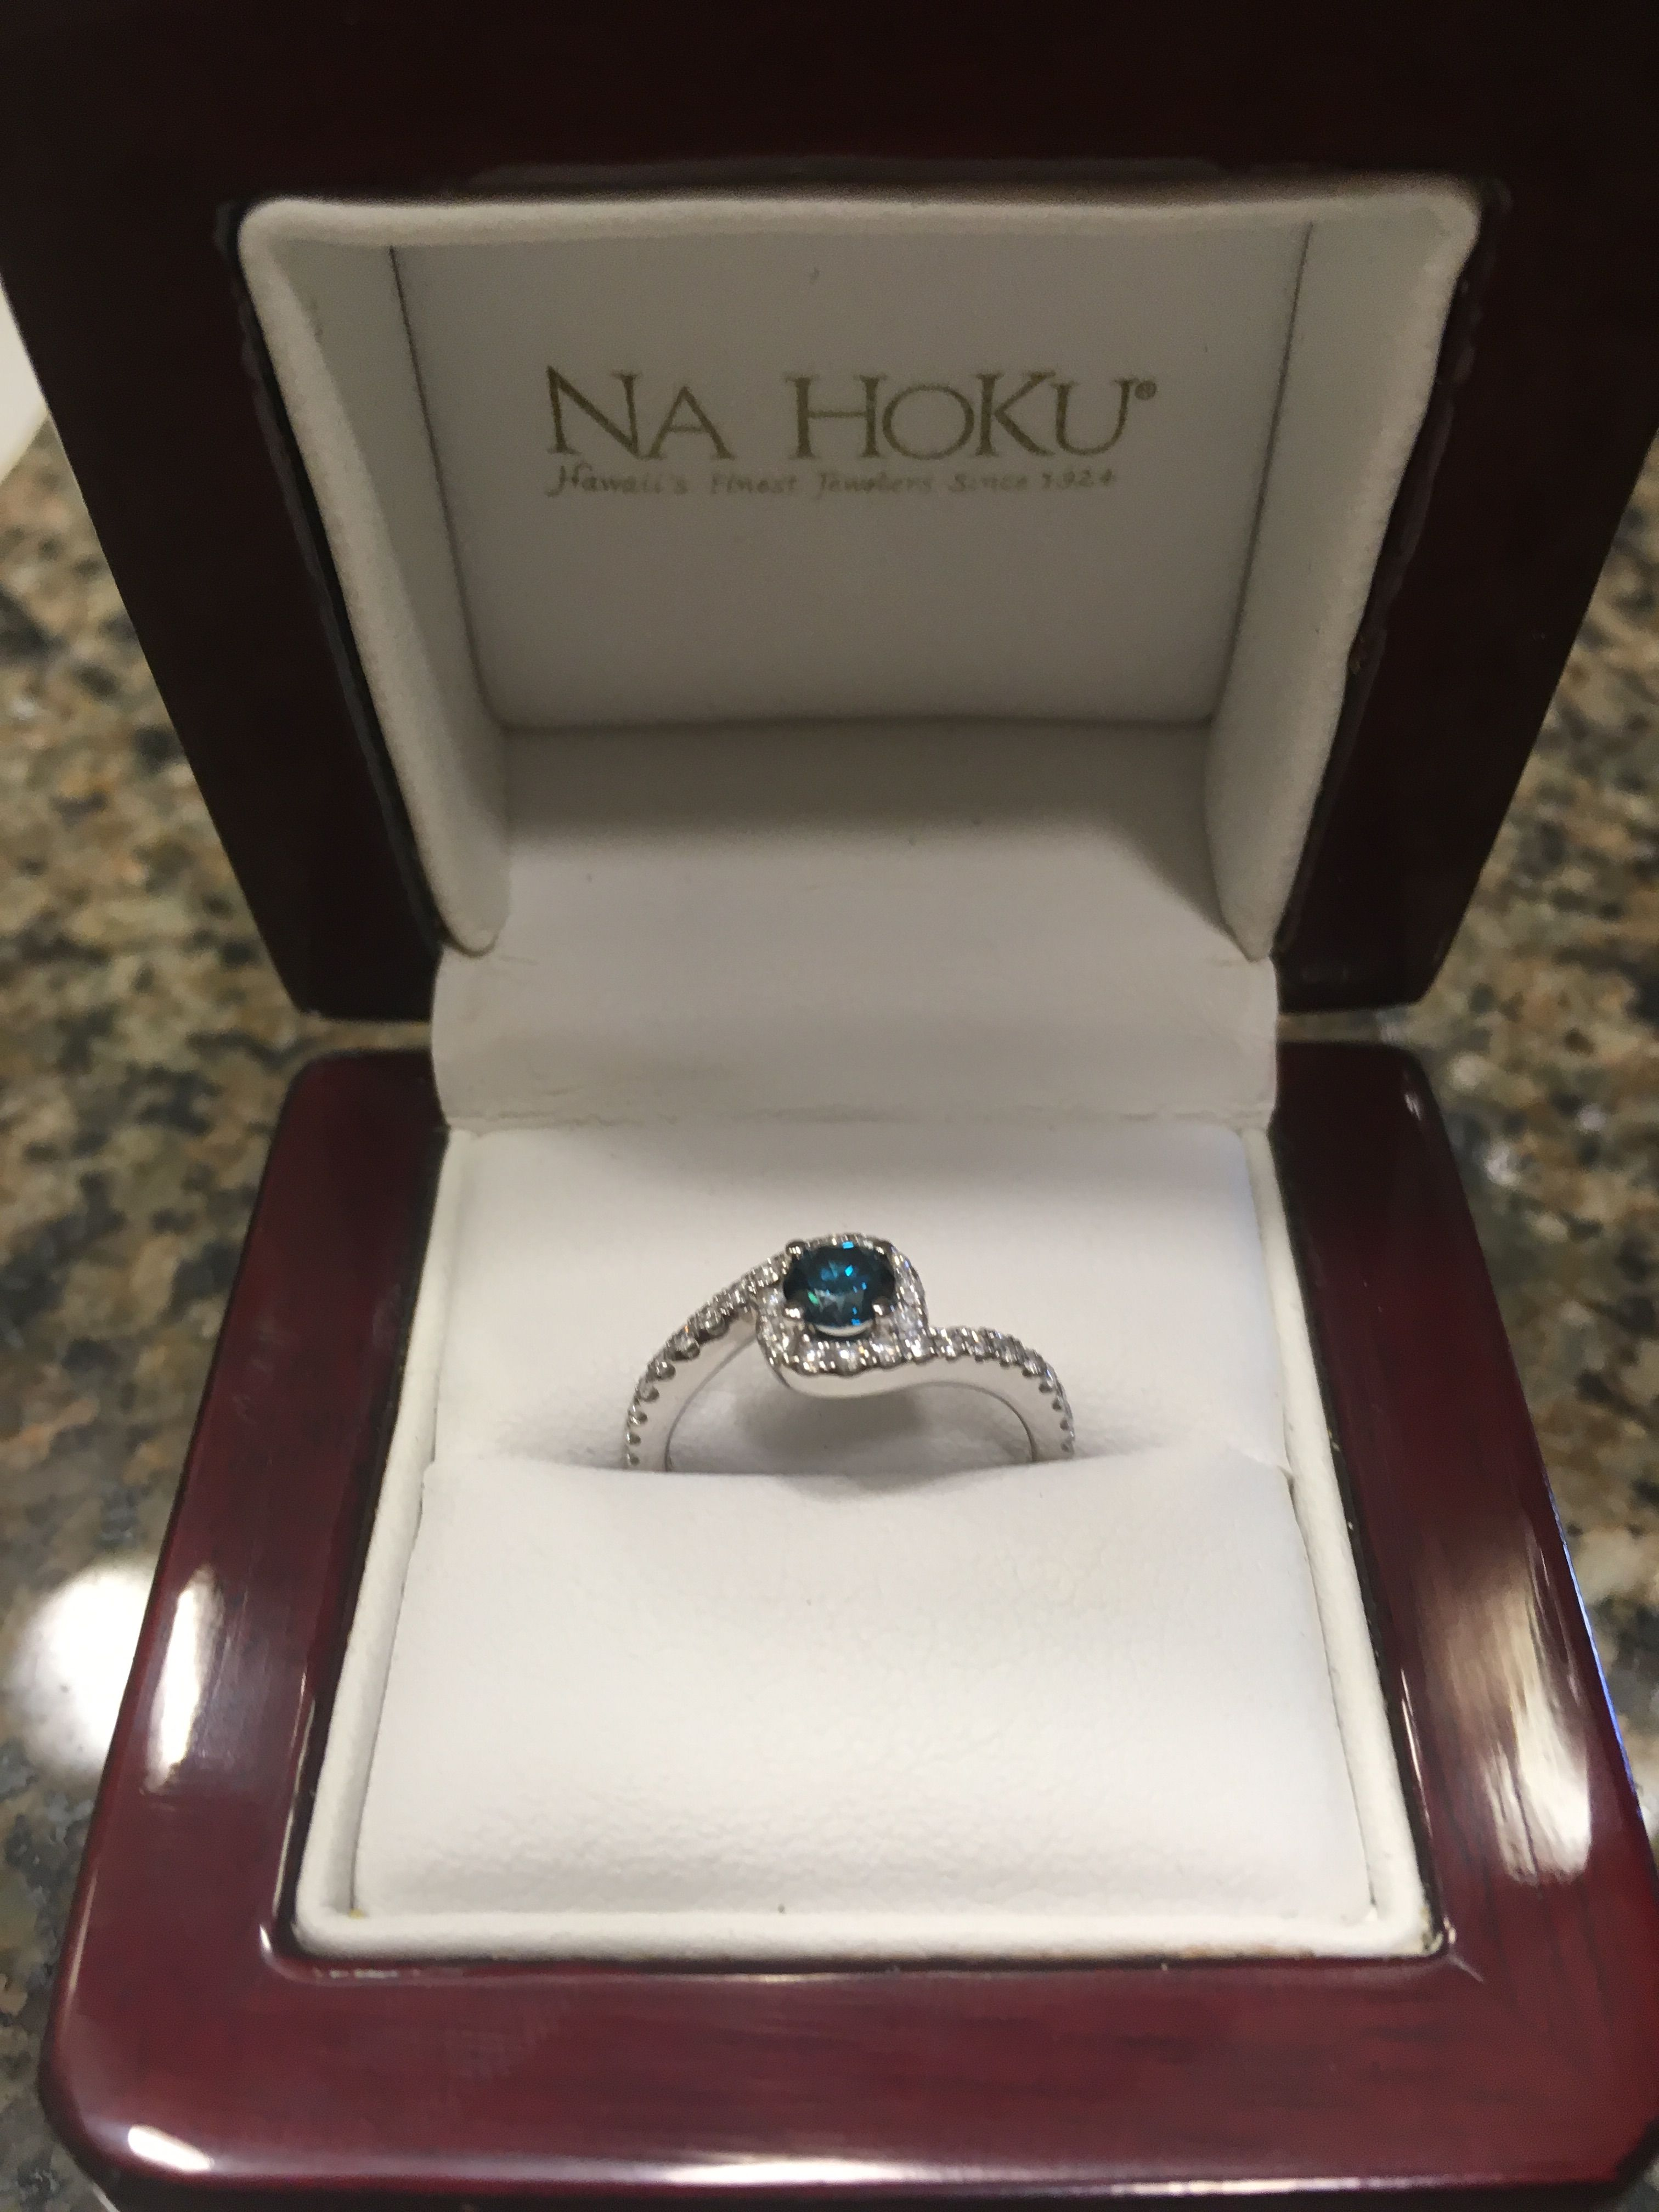 My engagement ring blue diamond center ring looks like waves from